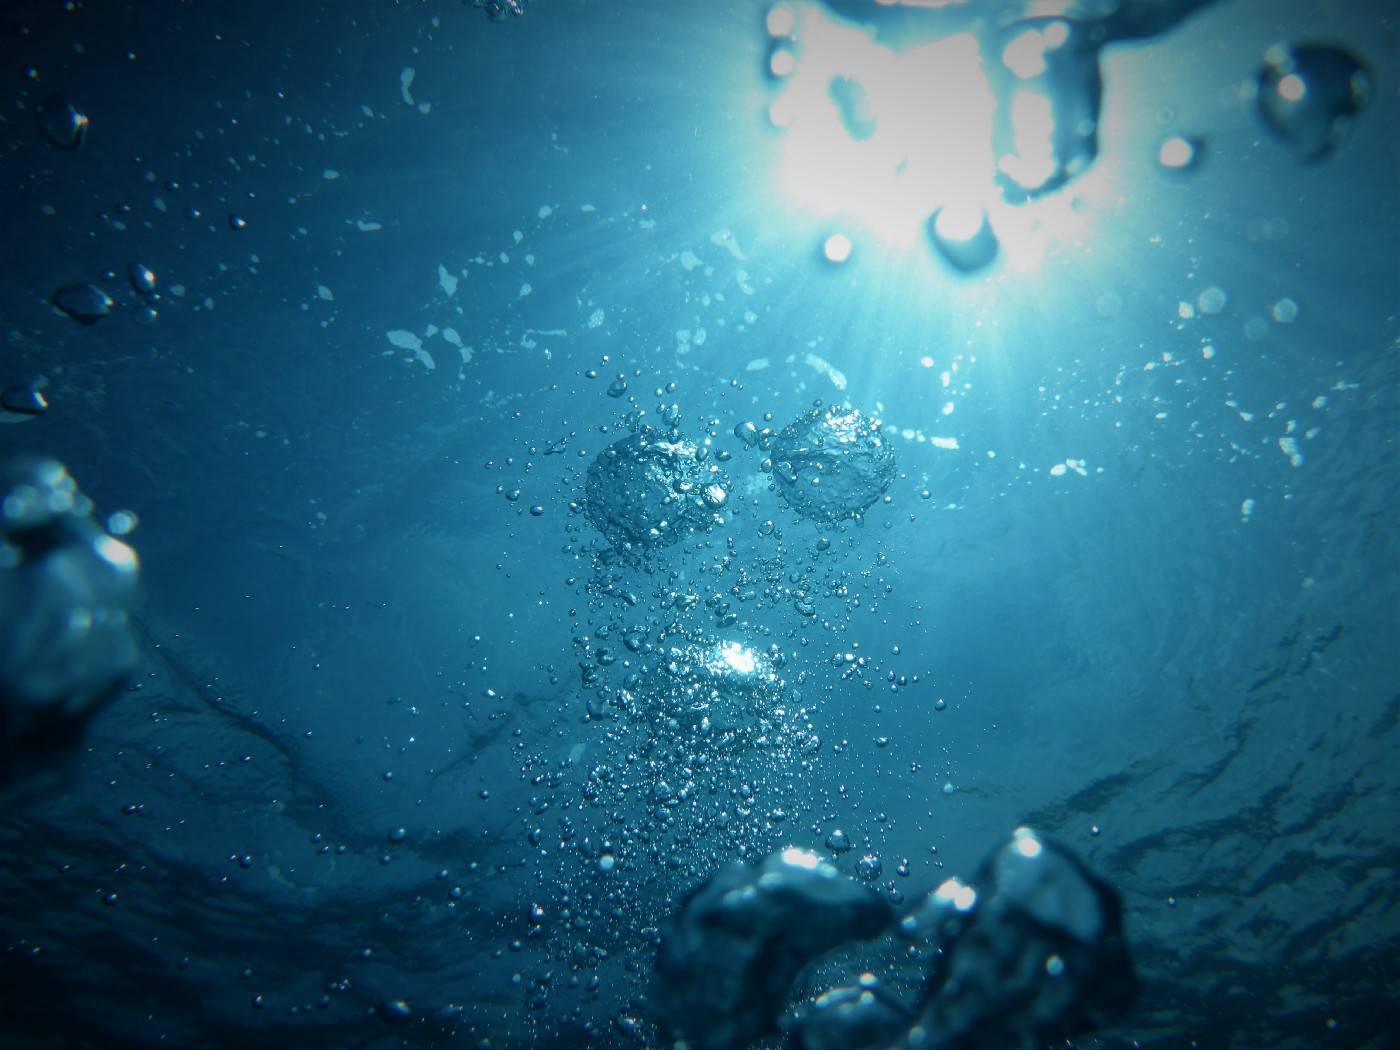 air bubbles rising to the surface of bright blue water with the sun shining through